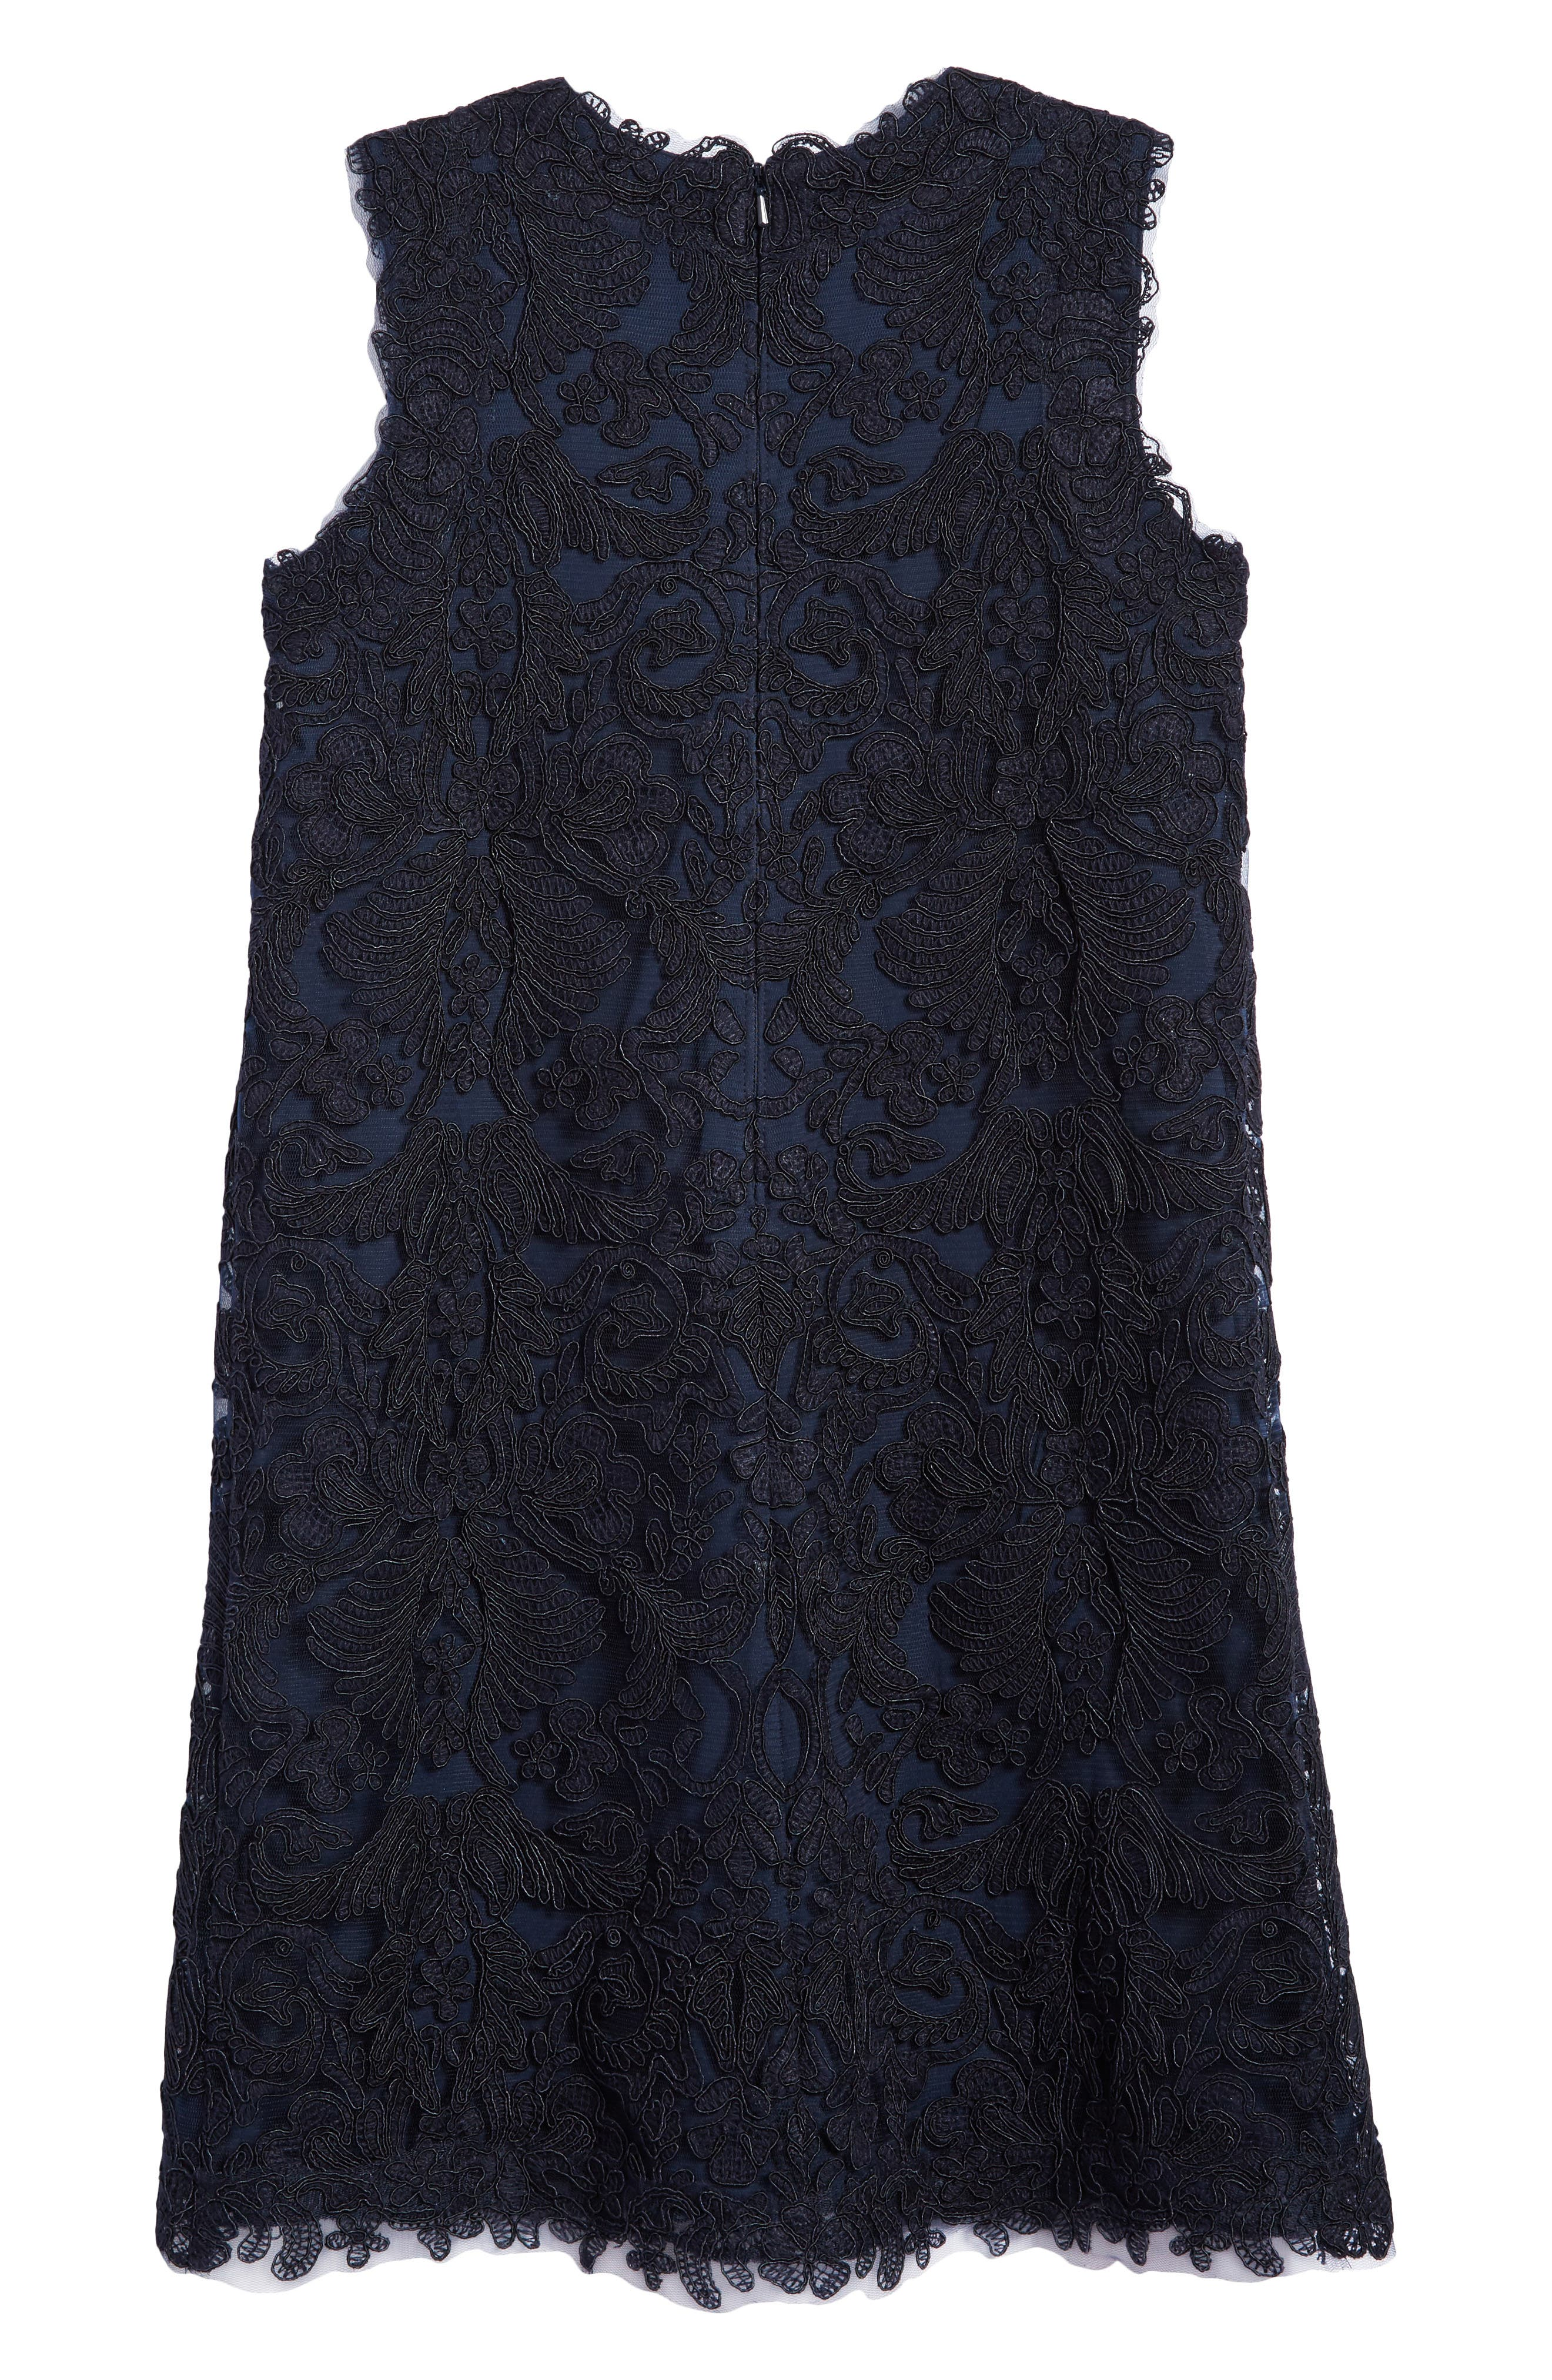 'Honeysuckle' Embroidered Tulle Dress,                             Alternate thumbnail 2, color,                             Navy